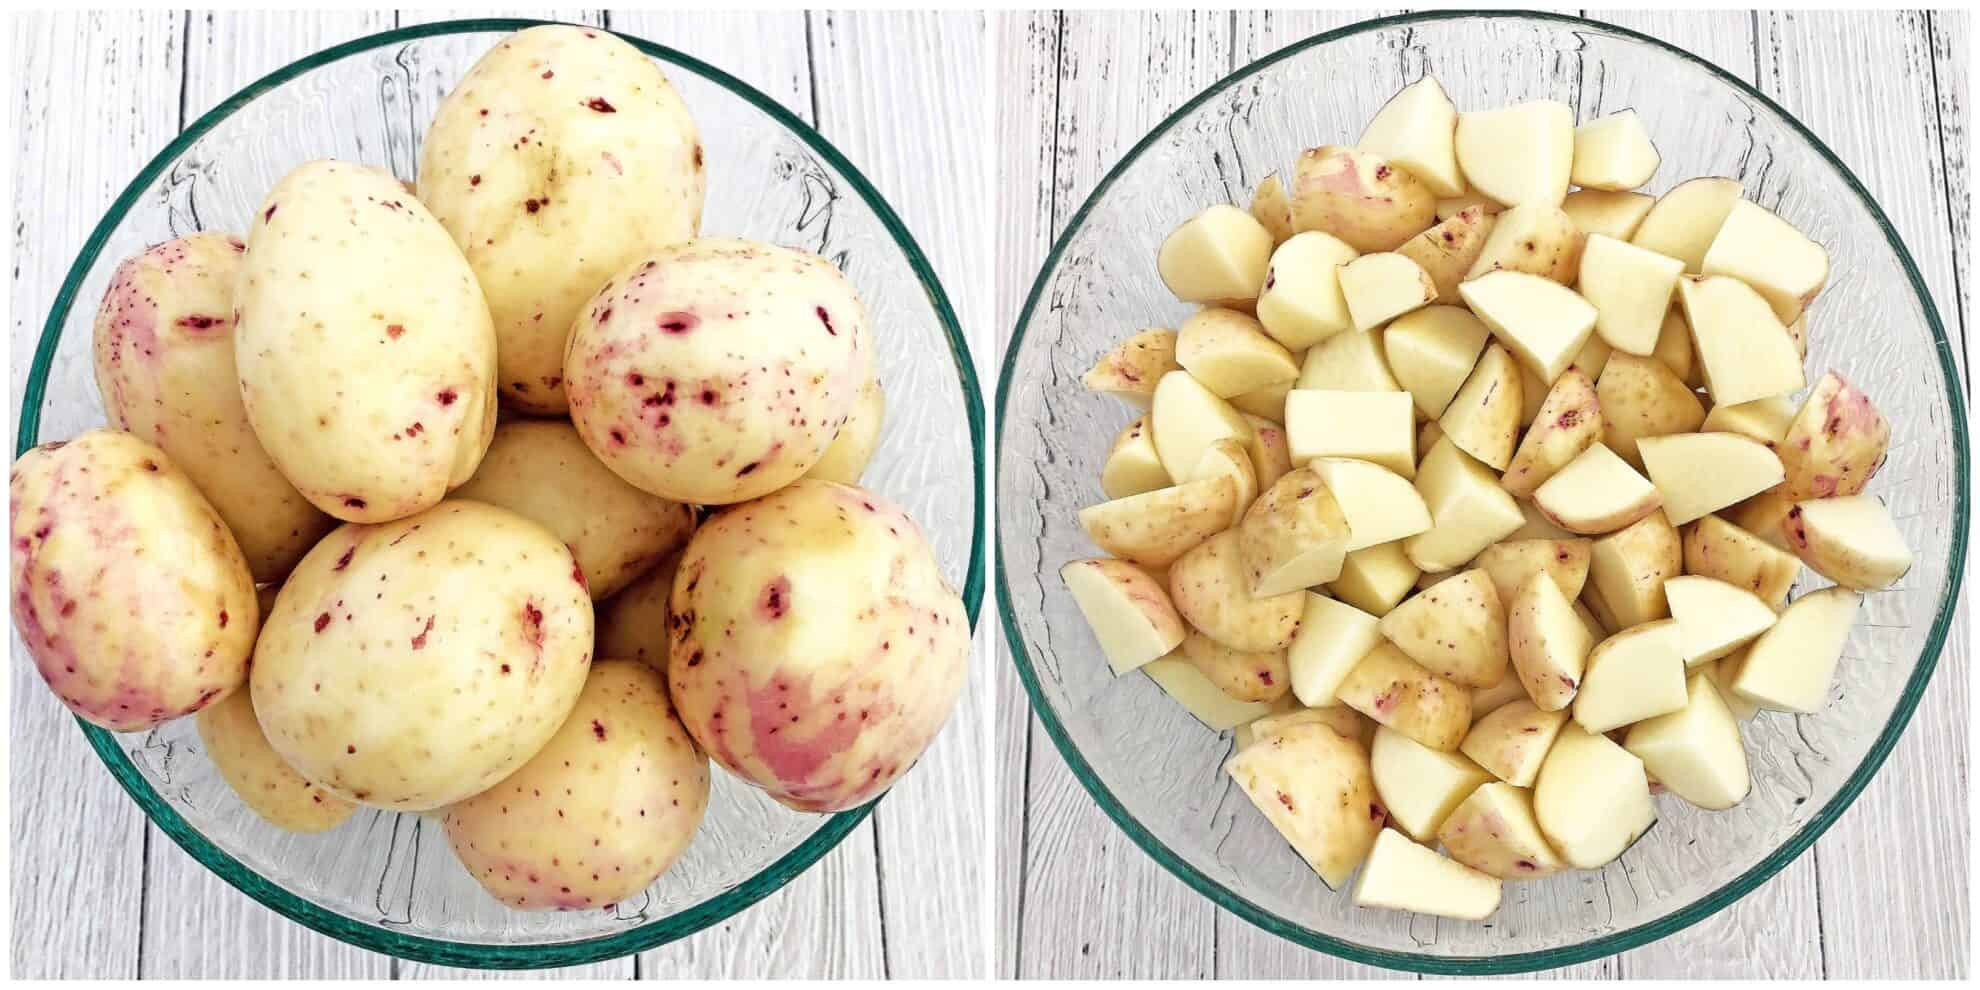 easy dinner, family favorite, garlic, homegrown red potatoes, Homemade Ranch Dressing, Instant Pot dish, Instant Pot Garlic Parmesan Ranch Potatoes Recipe, kid approved dinner, main course, Parmesan cheese, party friendly dish, red potatoes, young red potatoes